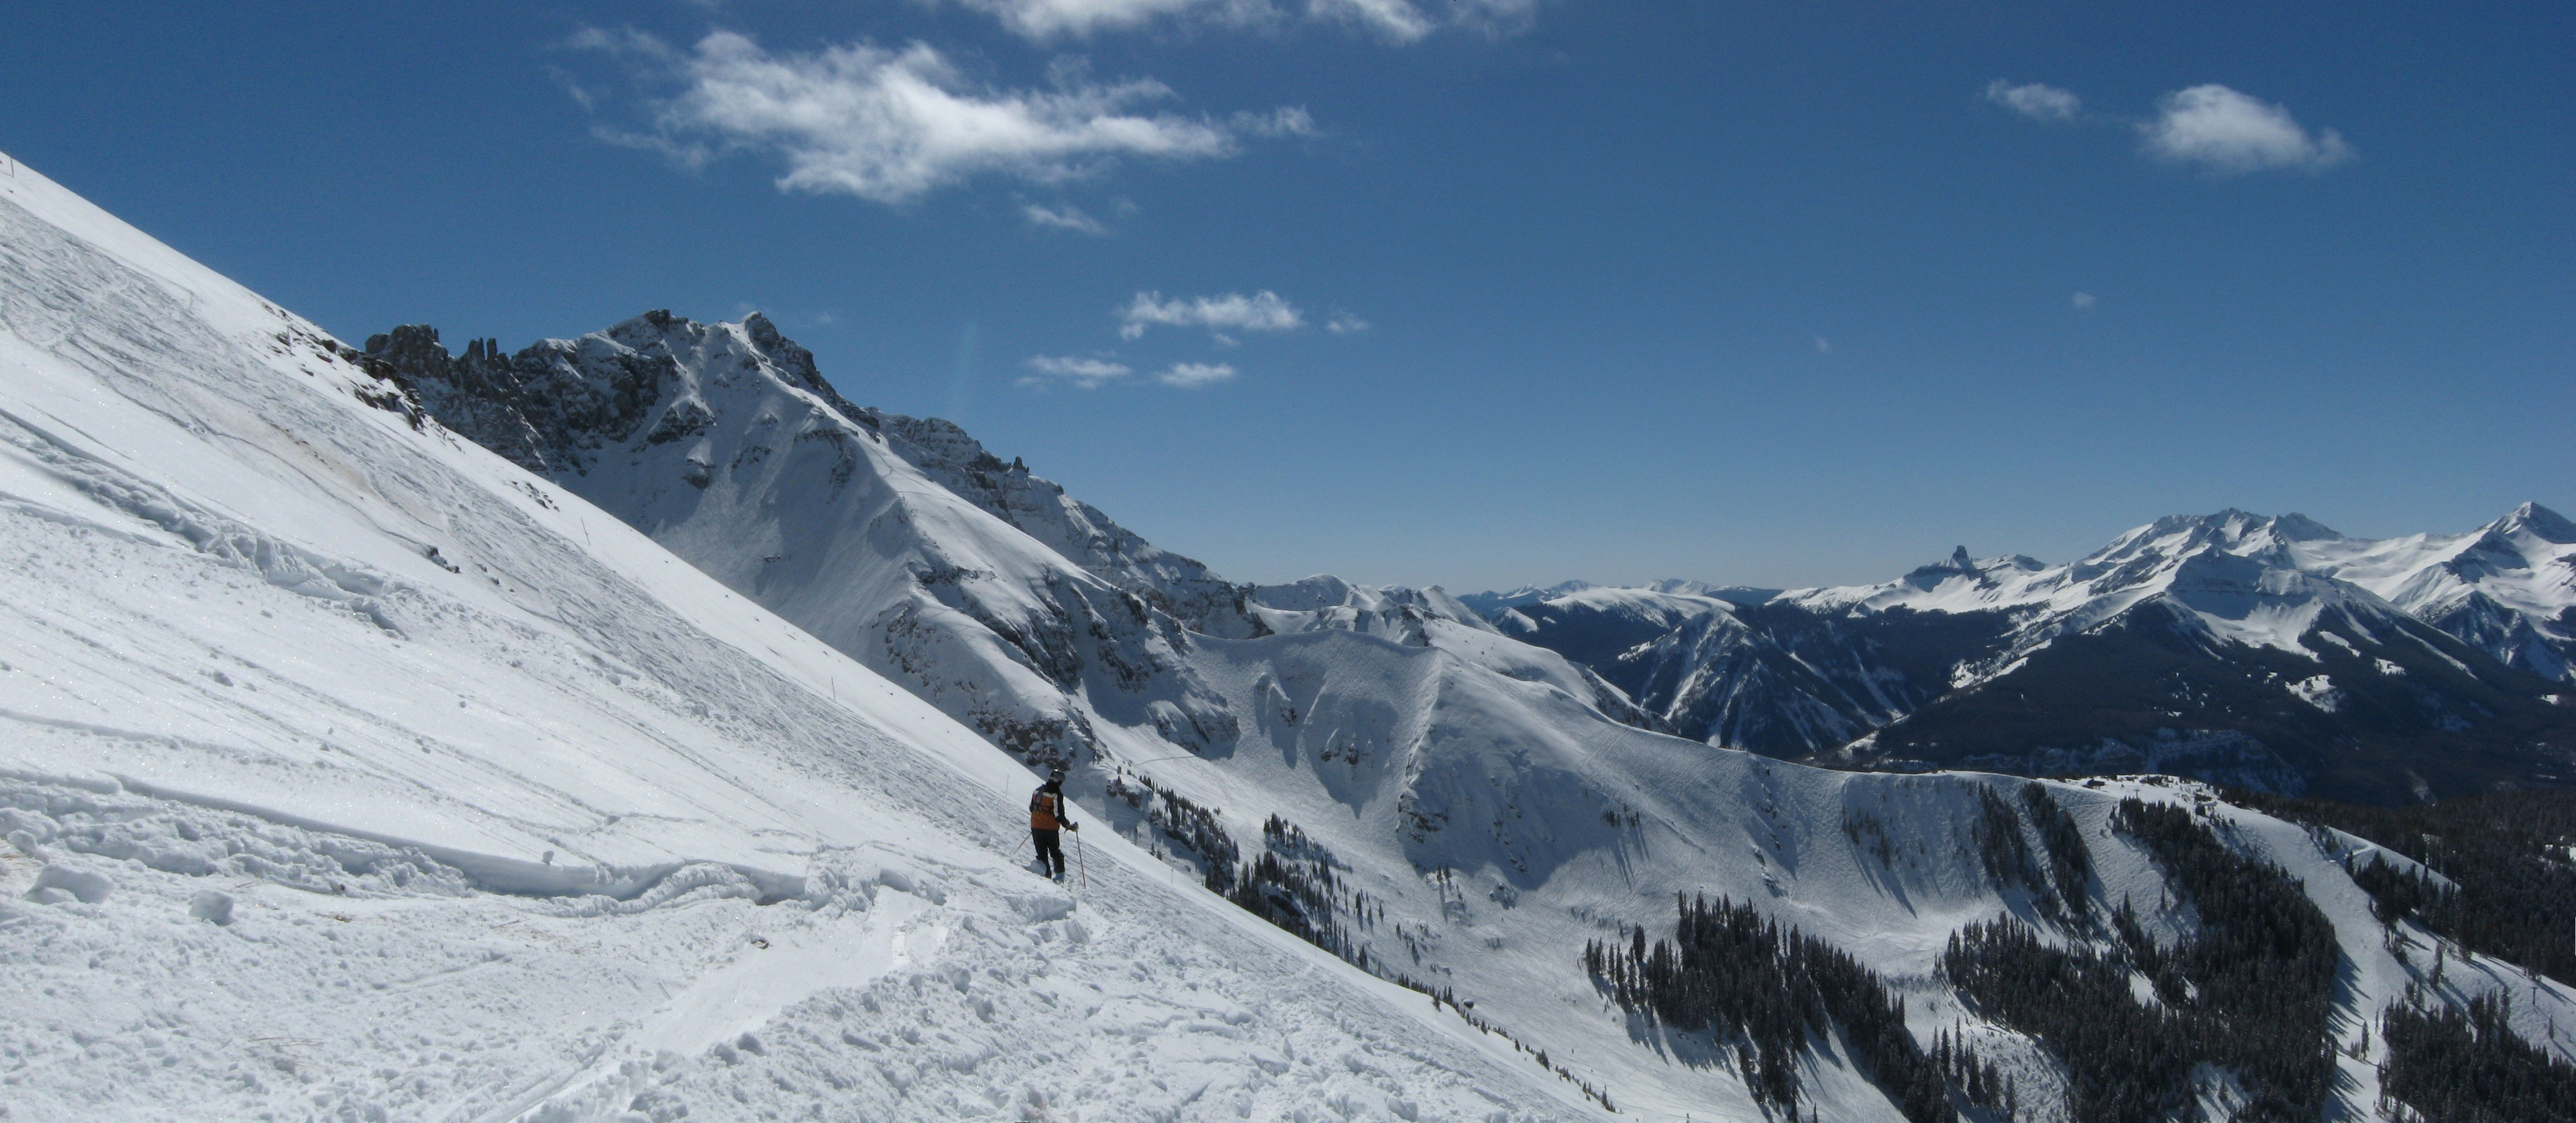 Palmyra Peak and Black Iron Bowl viewed from Gold Hill, Telluride, CO